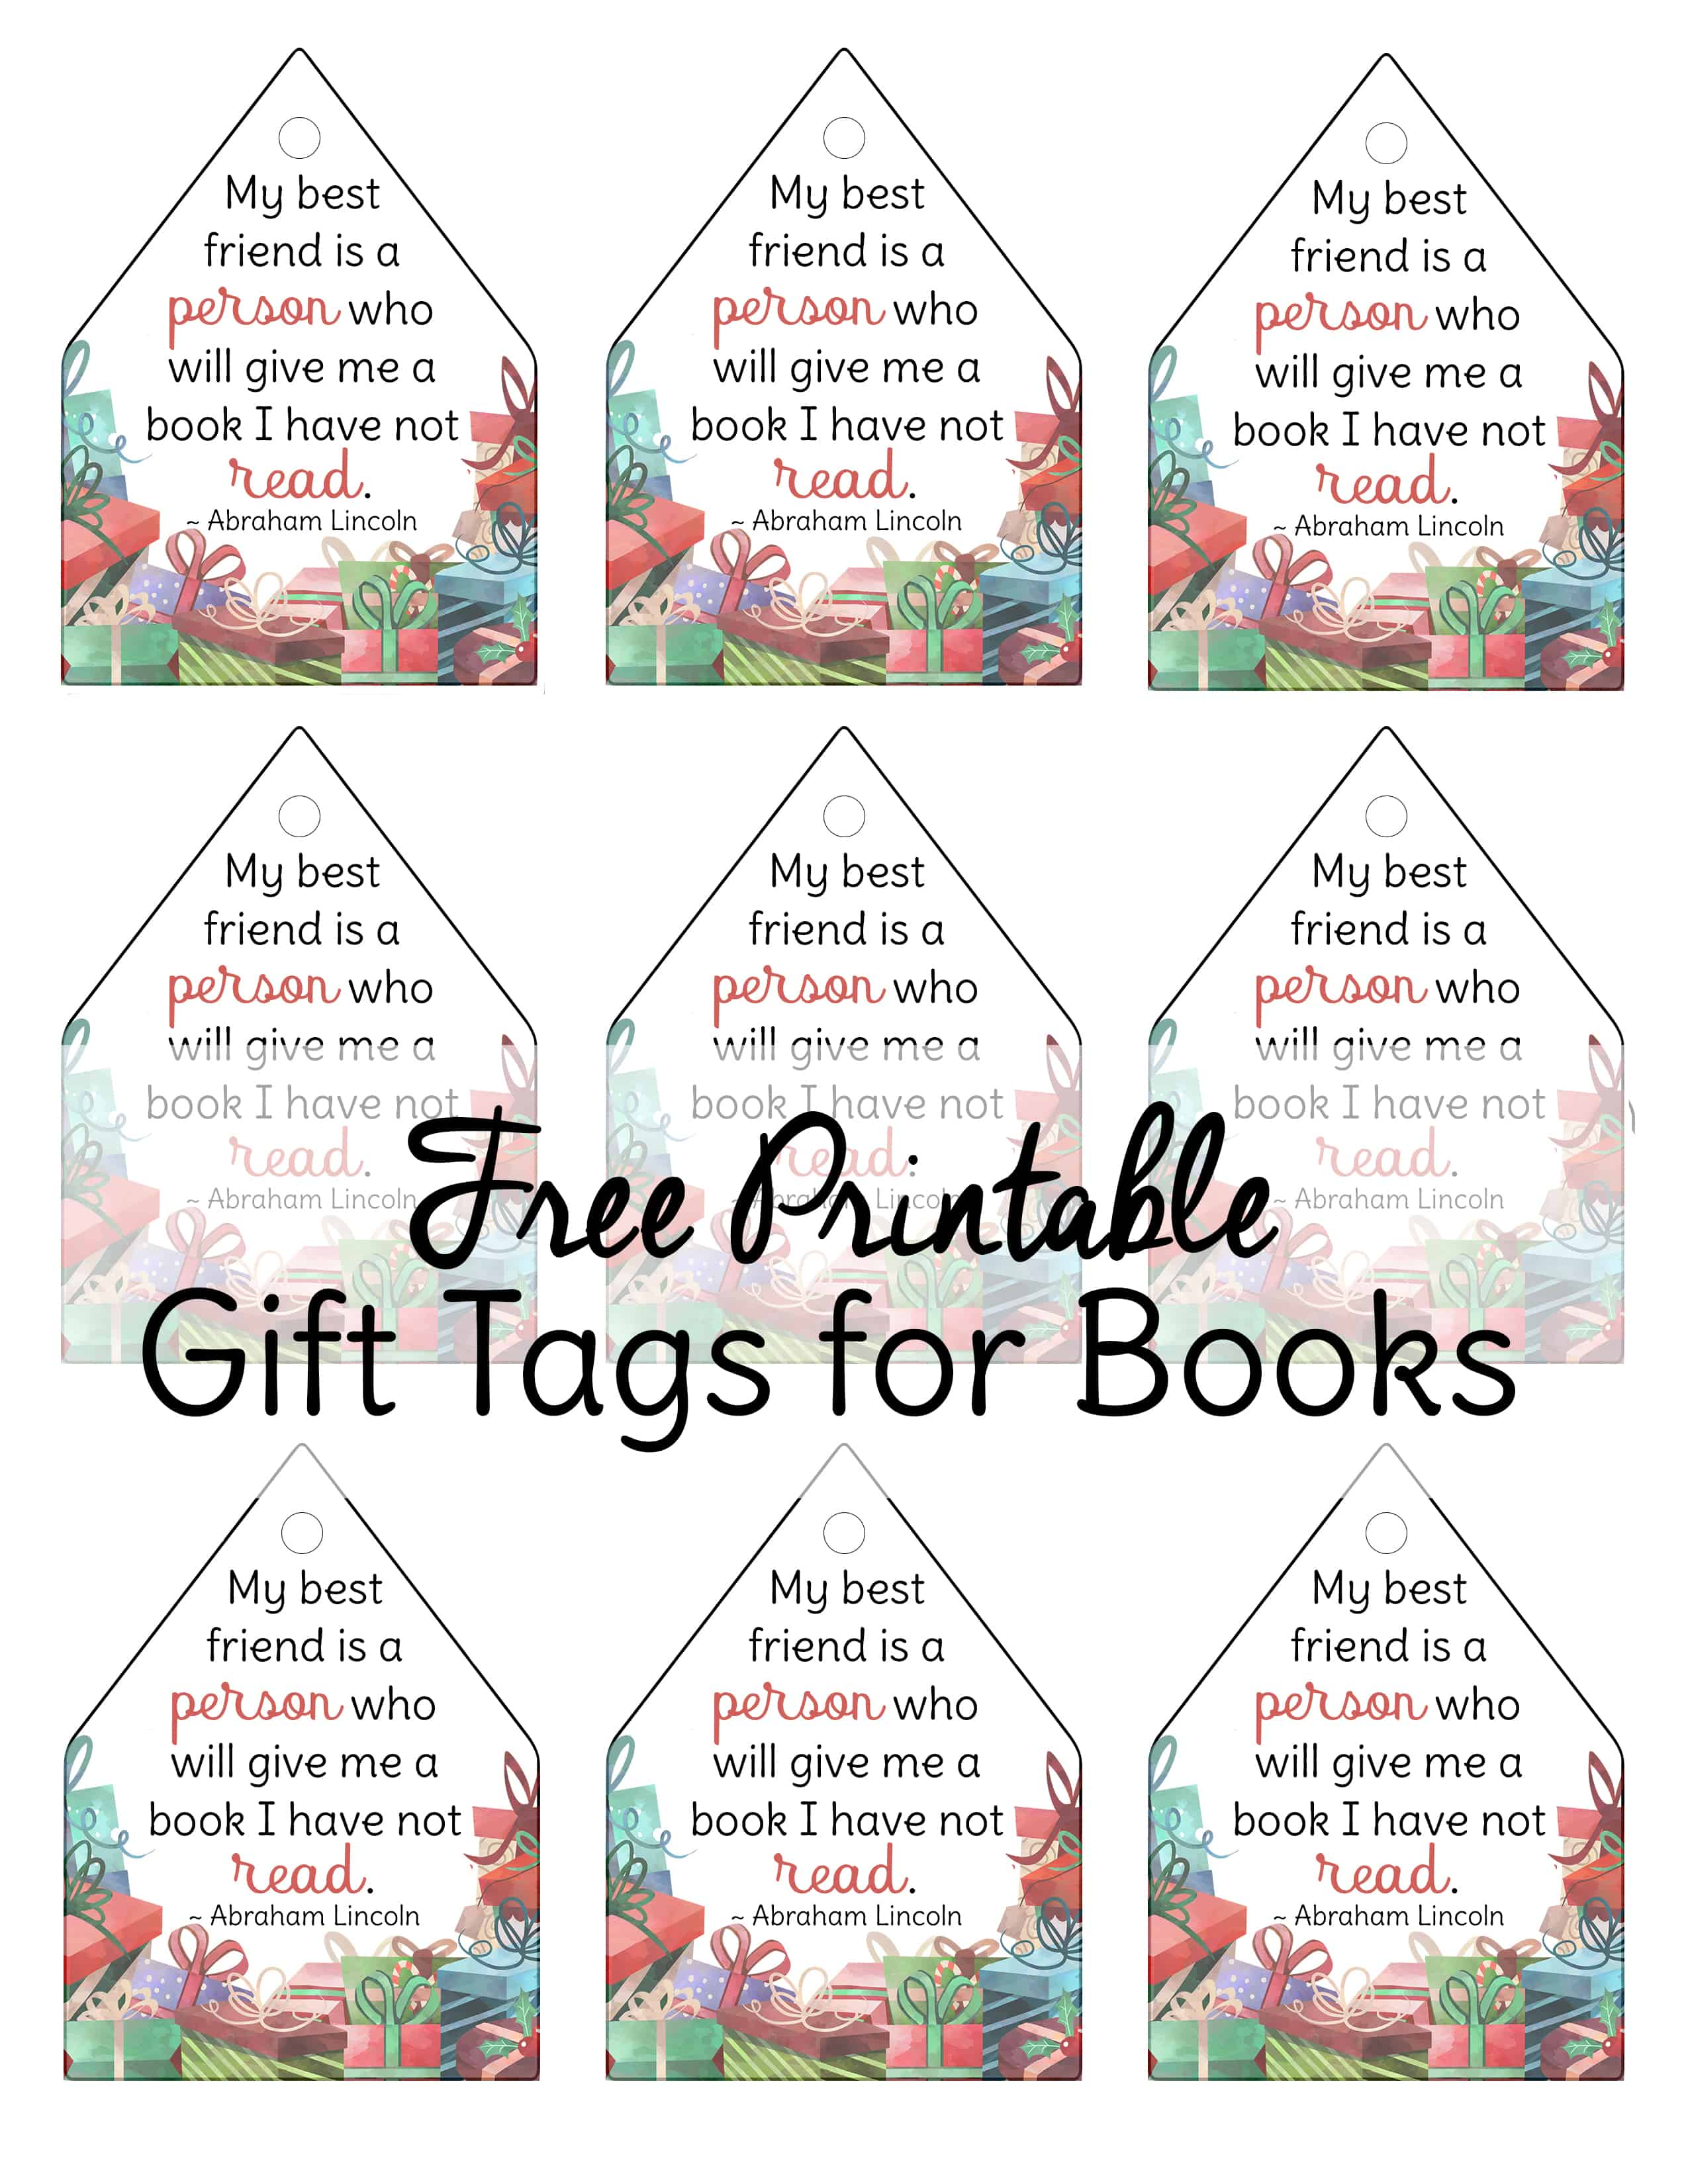 Free printable gift tags for books! Perfect if you do a book and pajamas with your kids on Christmas Eve as a tradition or if you're giving a gift to a book lover. #christmas #gifttags #freeprintable